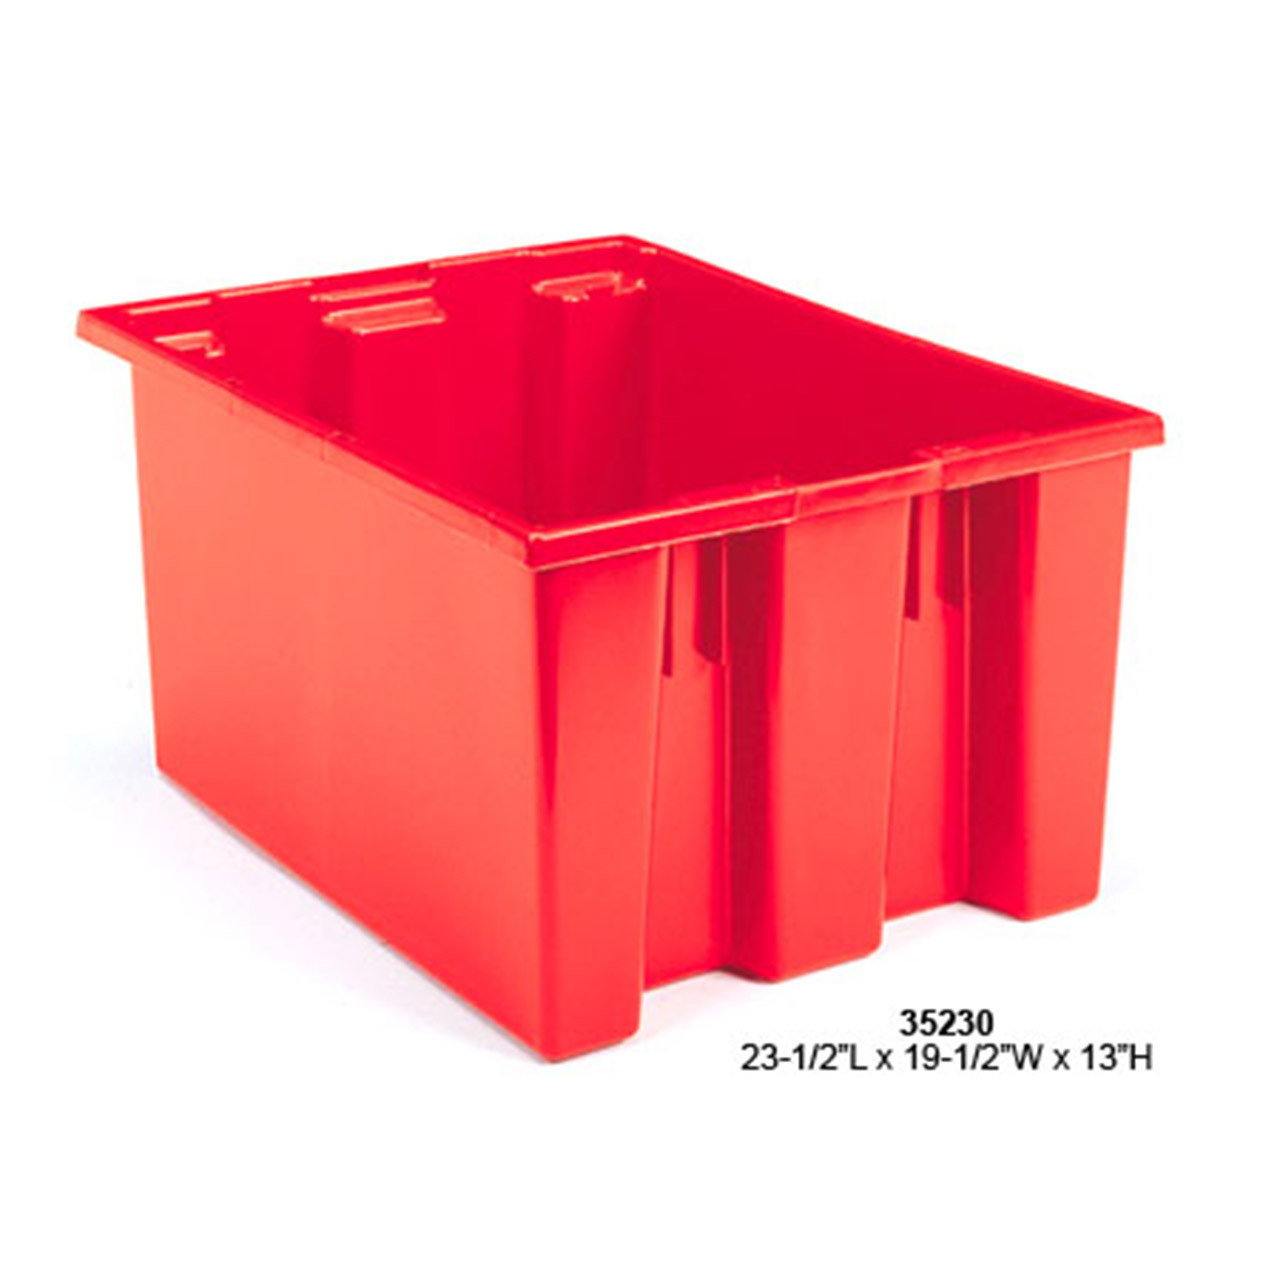 Akro-Mils Nest and Stack Plastic Tote Red